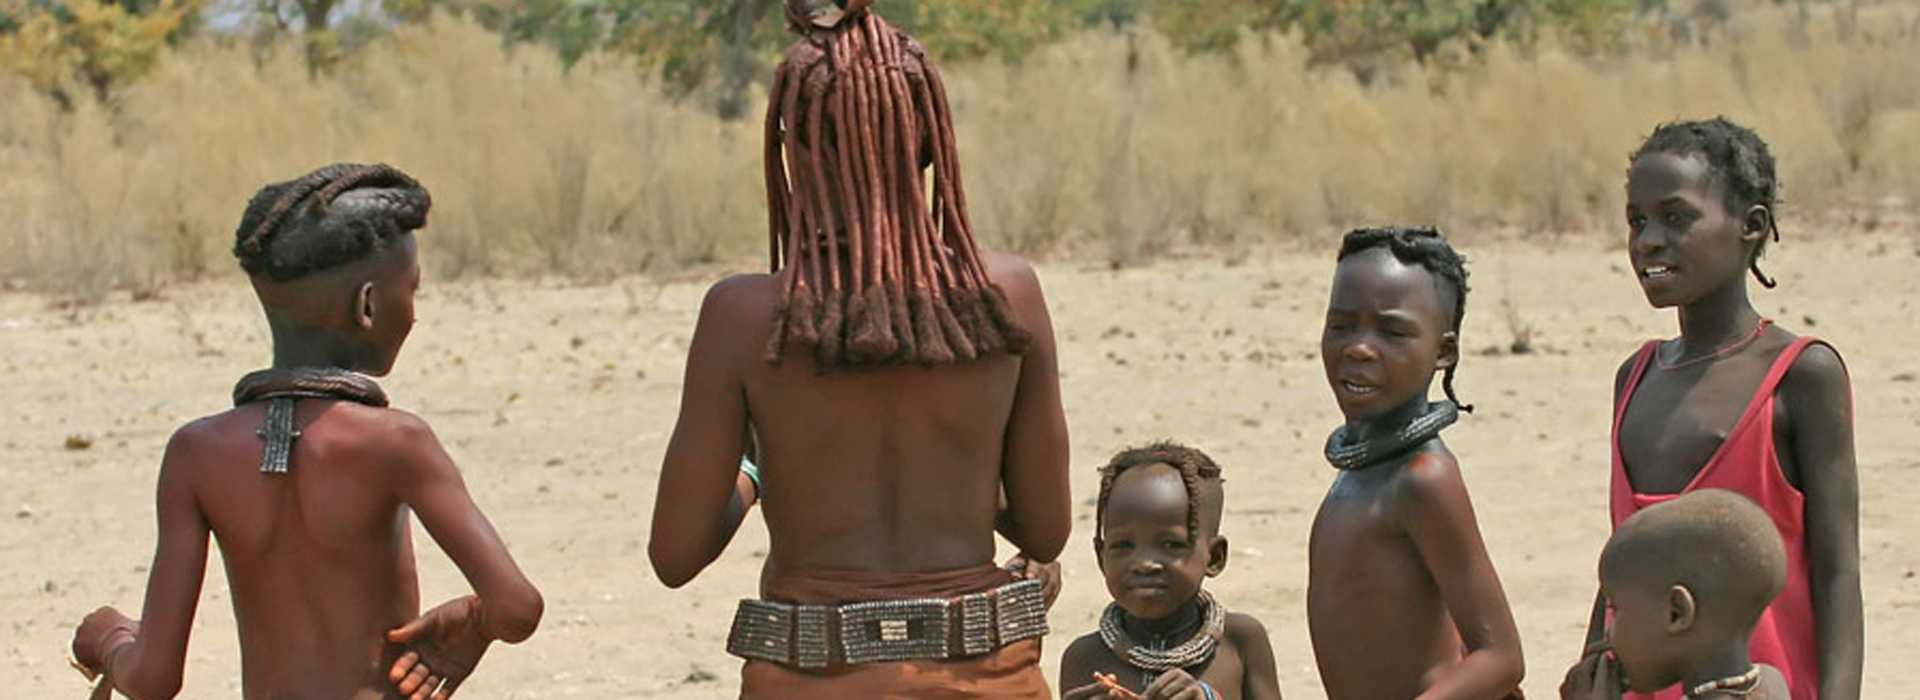 Himba Tribespeople At Skeleton Coast